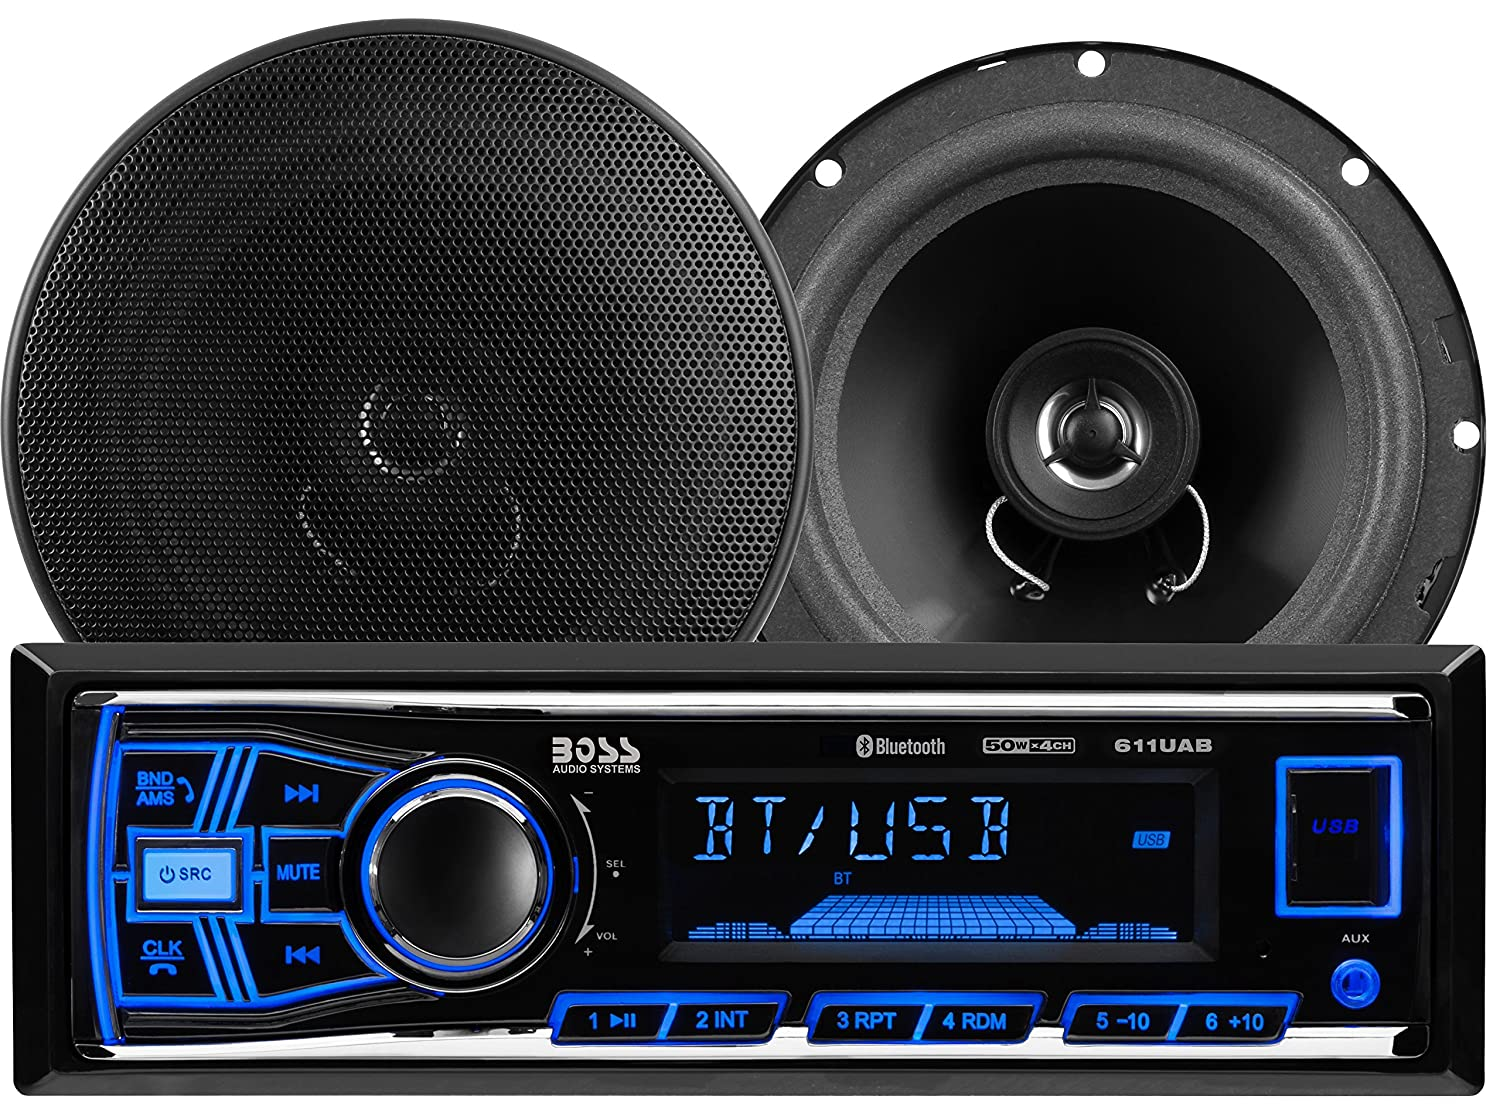 BOSS AUDIO Single-din In-dash Mechless Am/fm Receiver System with Bluetooth and Speakers Petra 638BCK